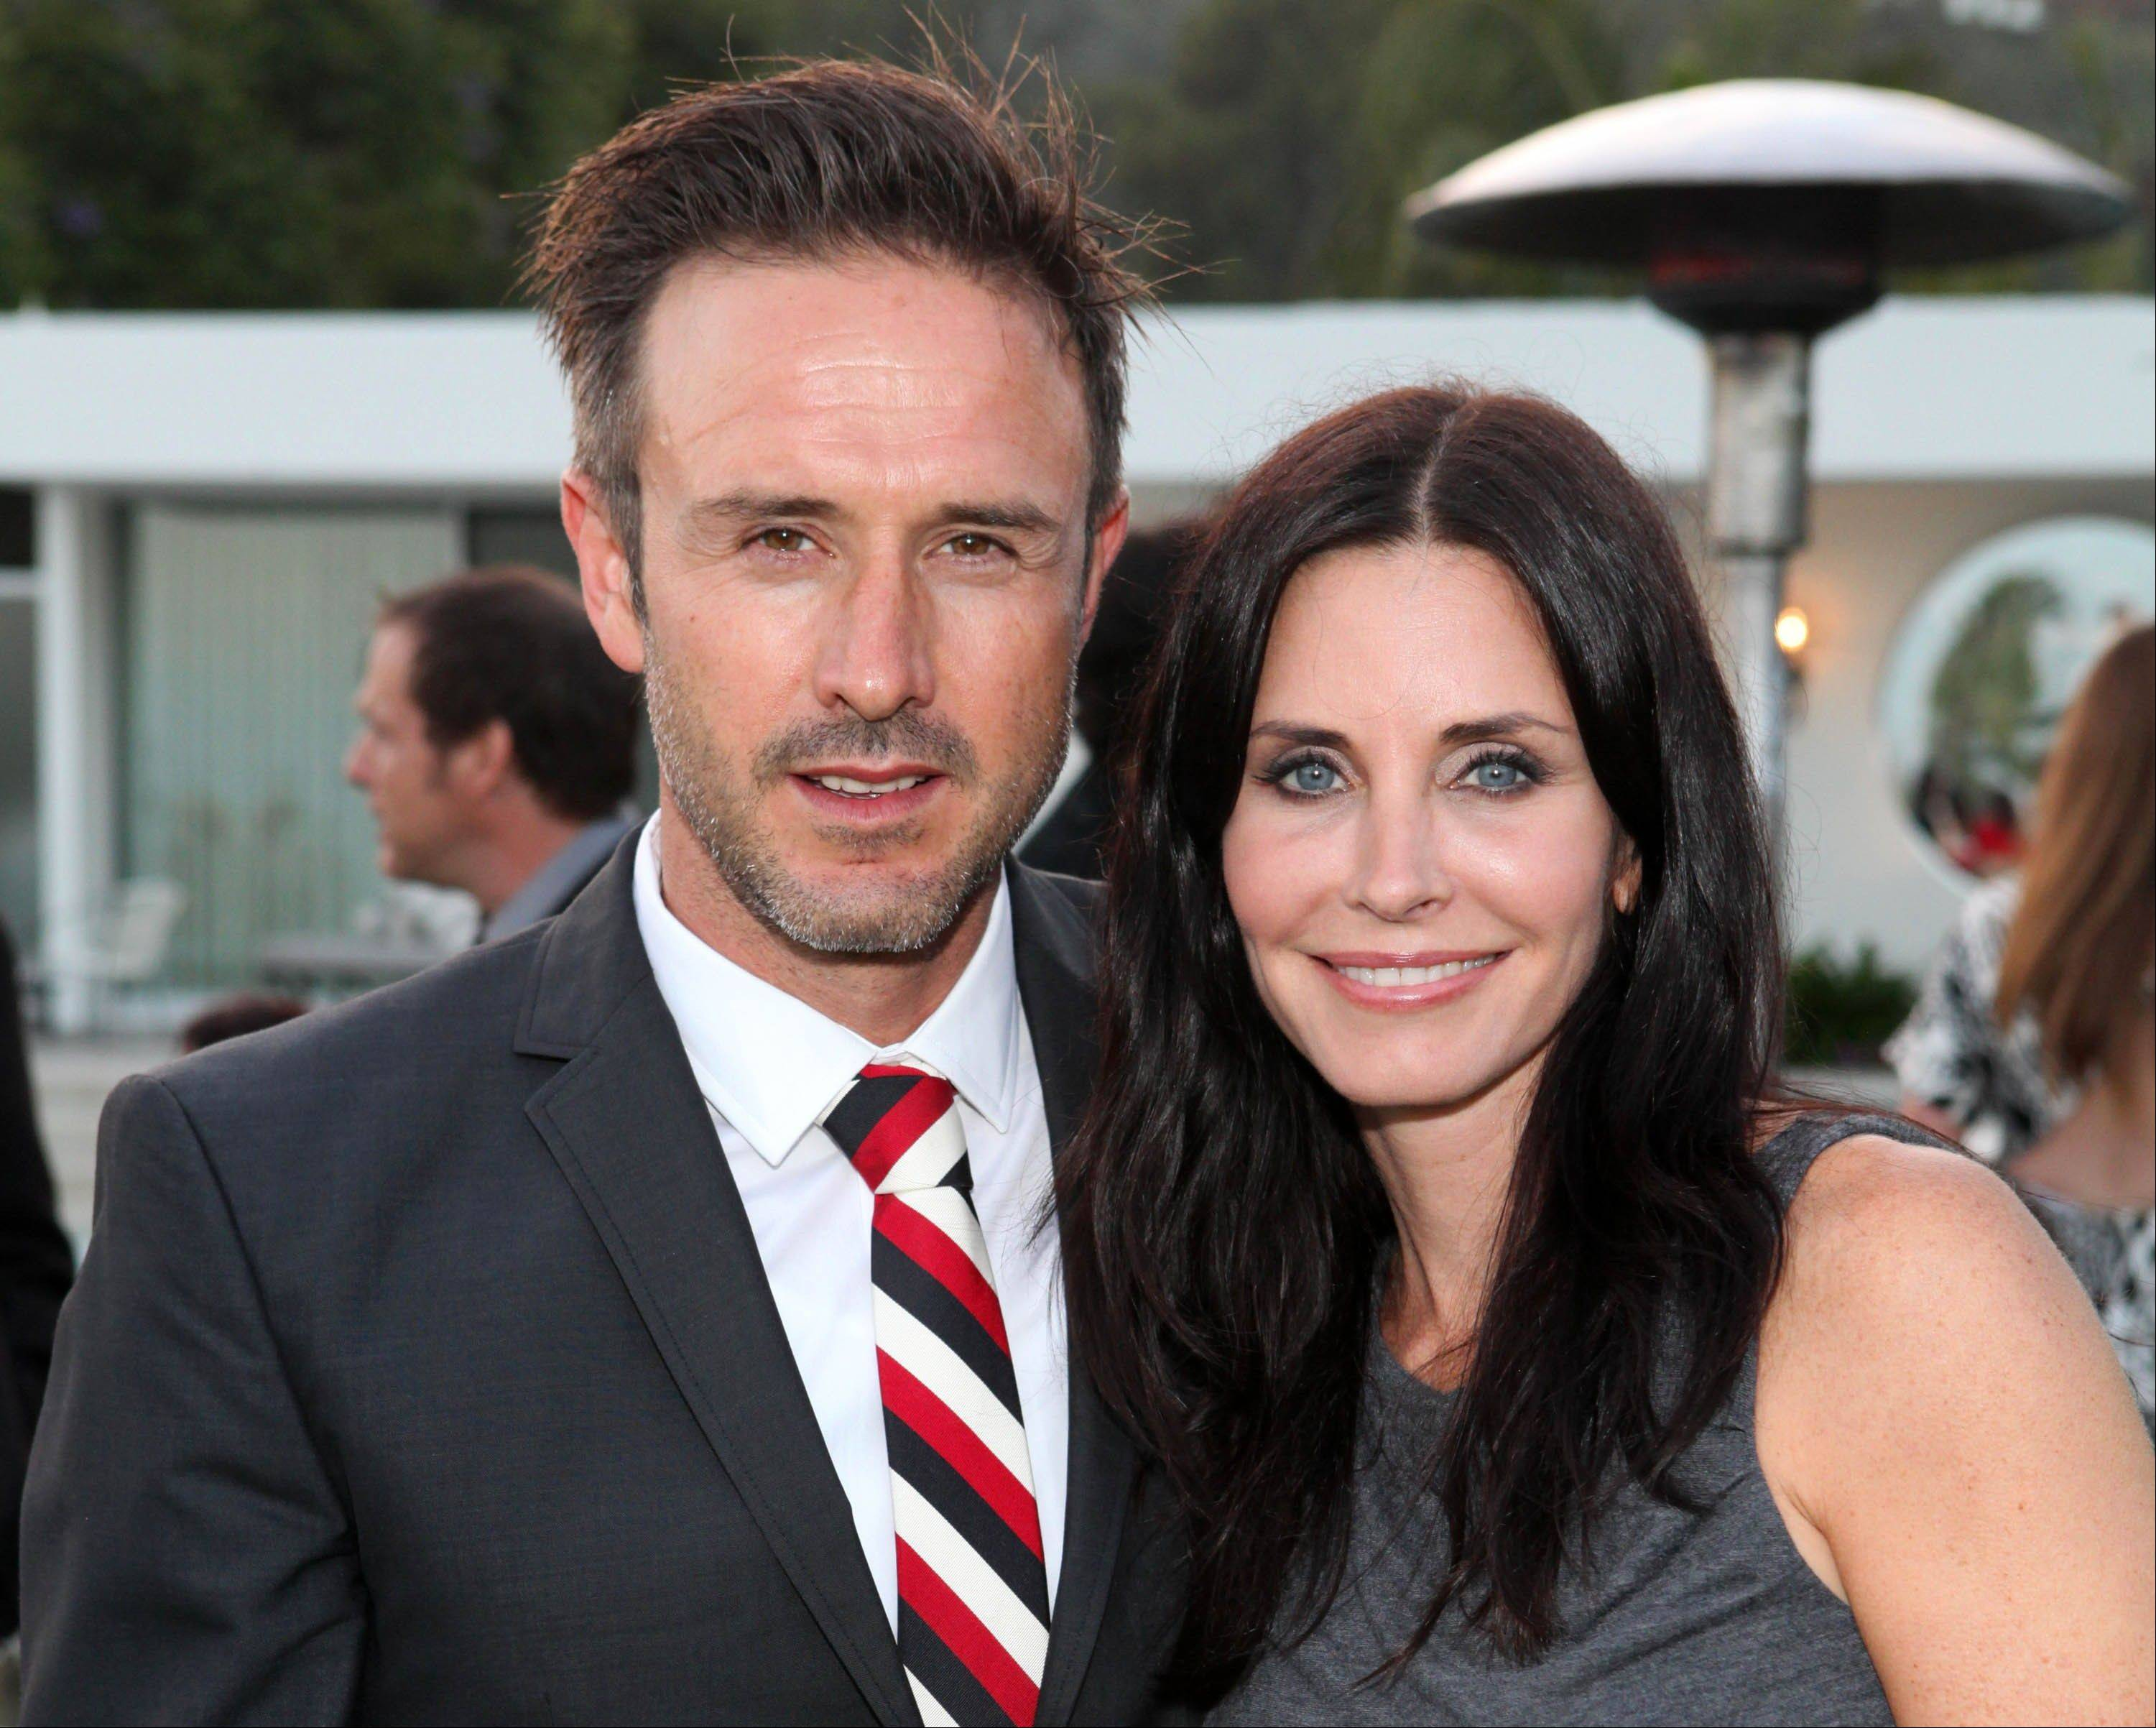 A Los Angeles judge finalized Courteney Cox and David Arquette's divorce on Tuesday. The pair were married in 1999 and announced they were separating in 2010.